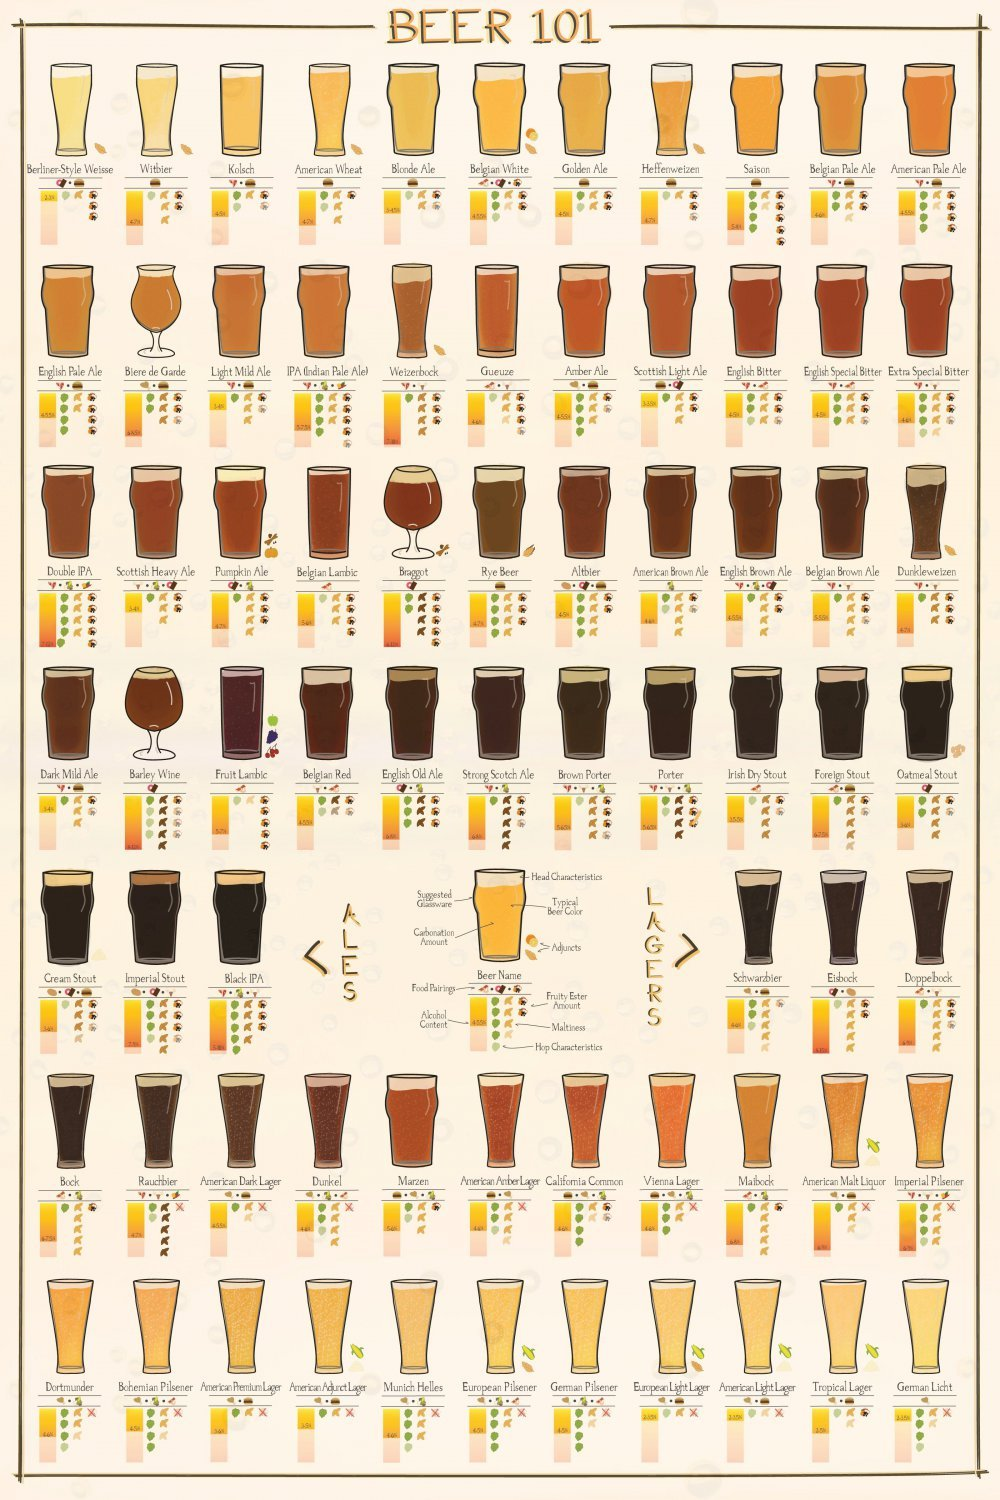 Many Varieties of Beer 101 Chart 24x35 inches Canvas Print